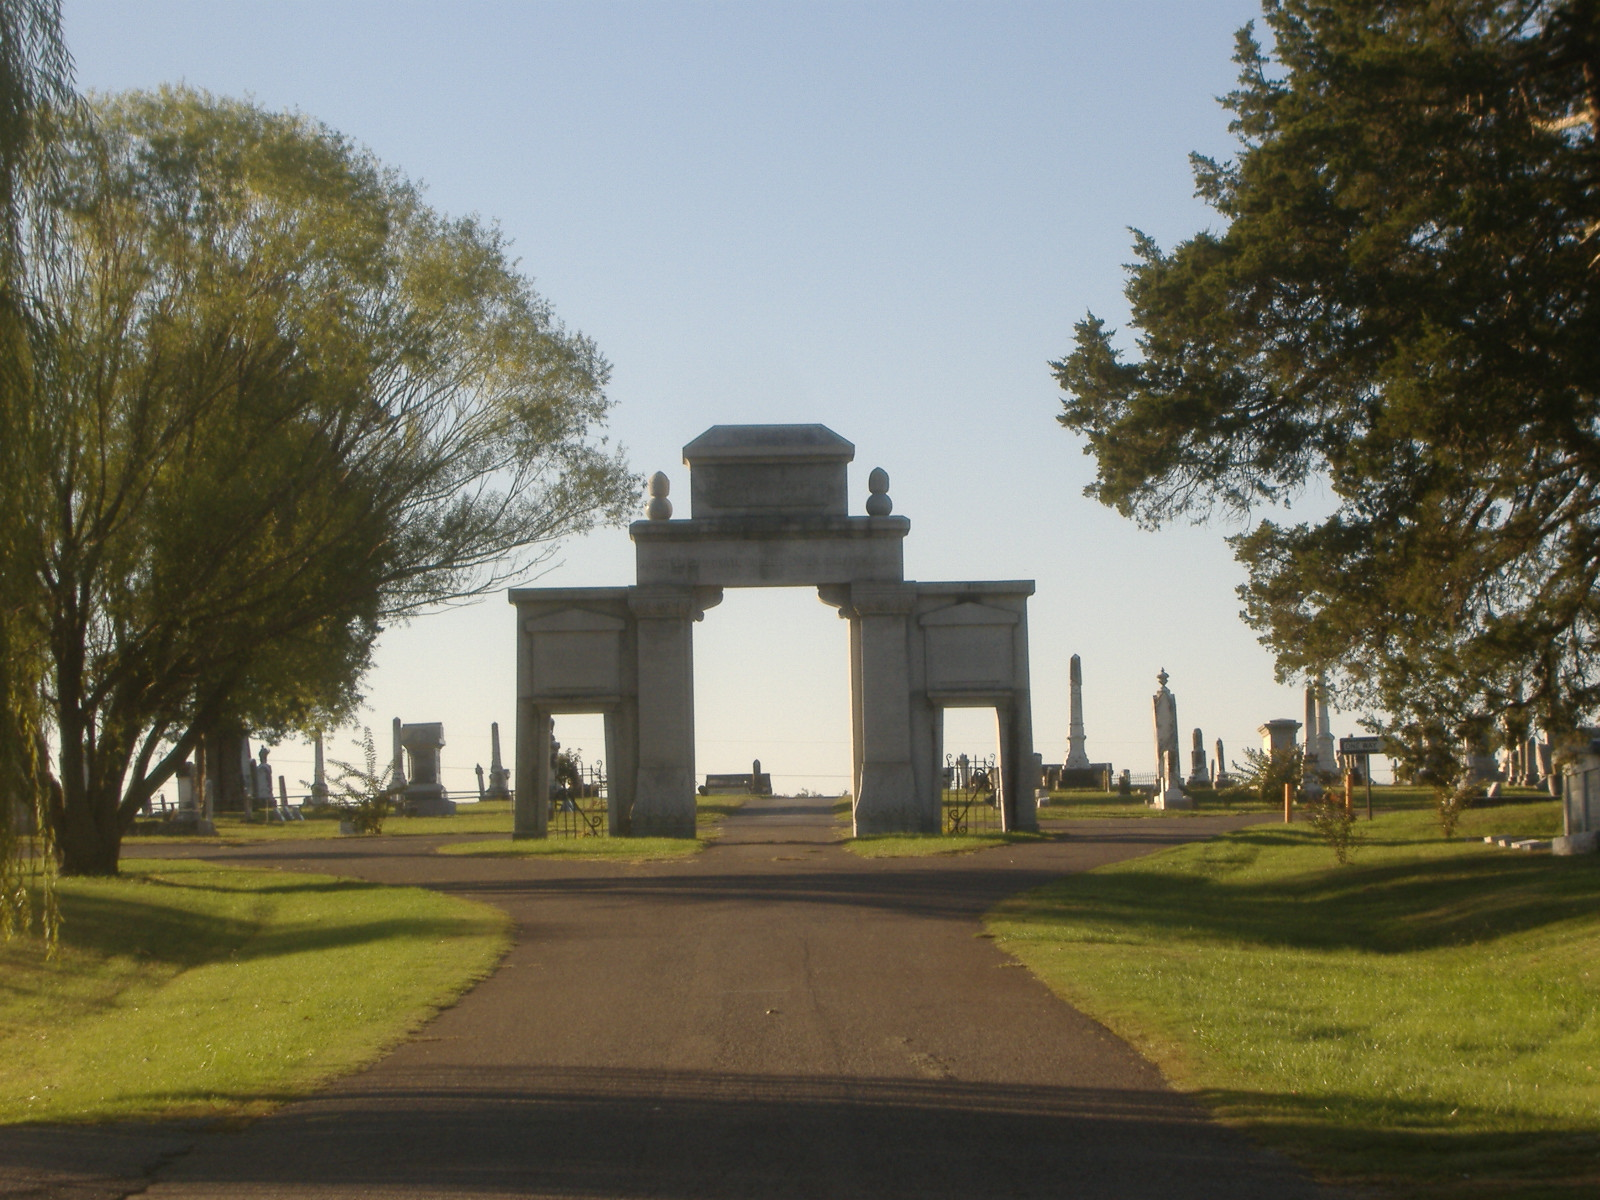 The gateway is located near the entrance to cemetery